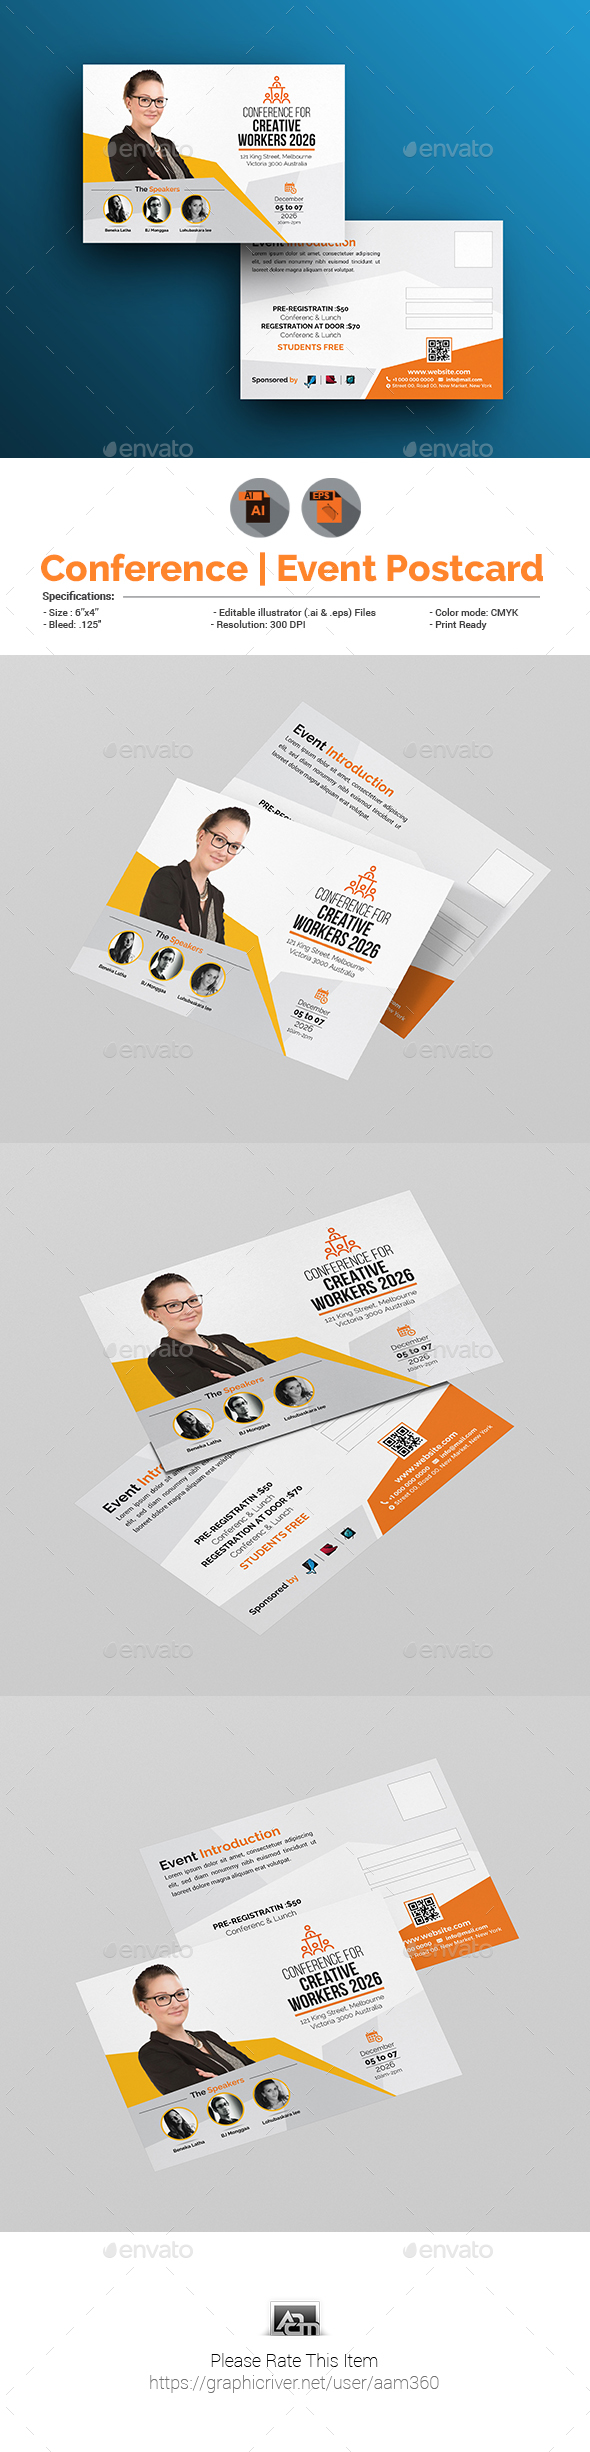 Event / Conference Postcard Template - Cards & Invites Print Templates